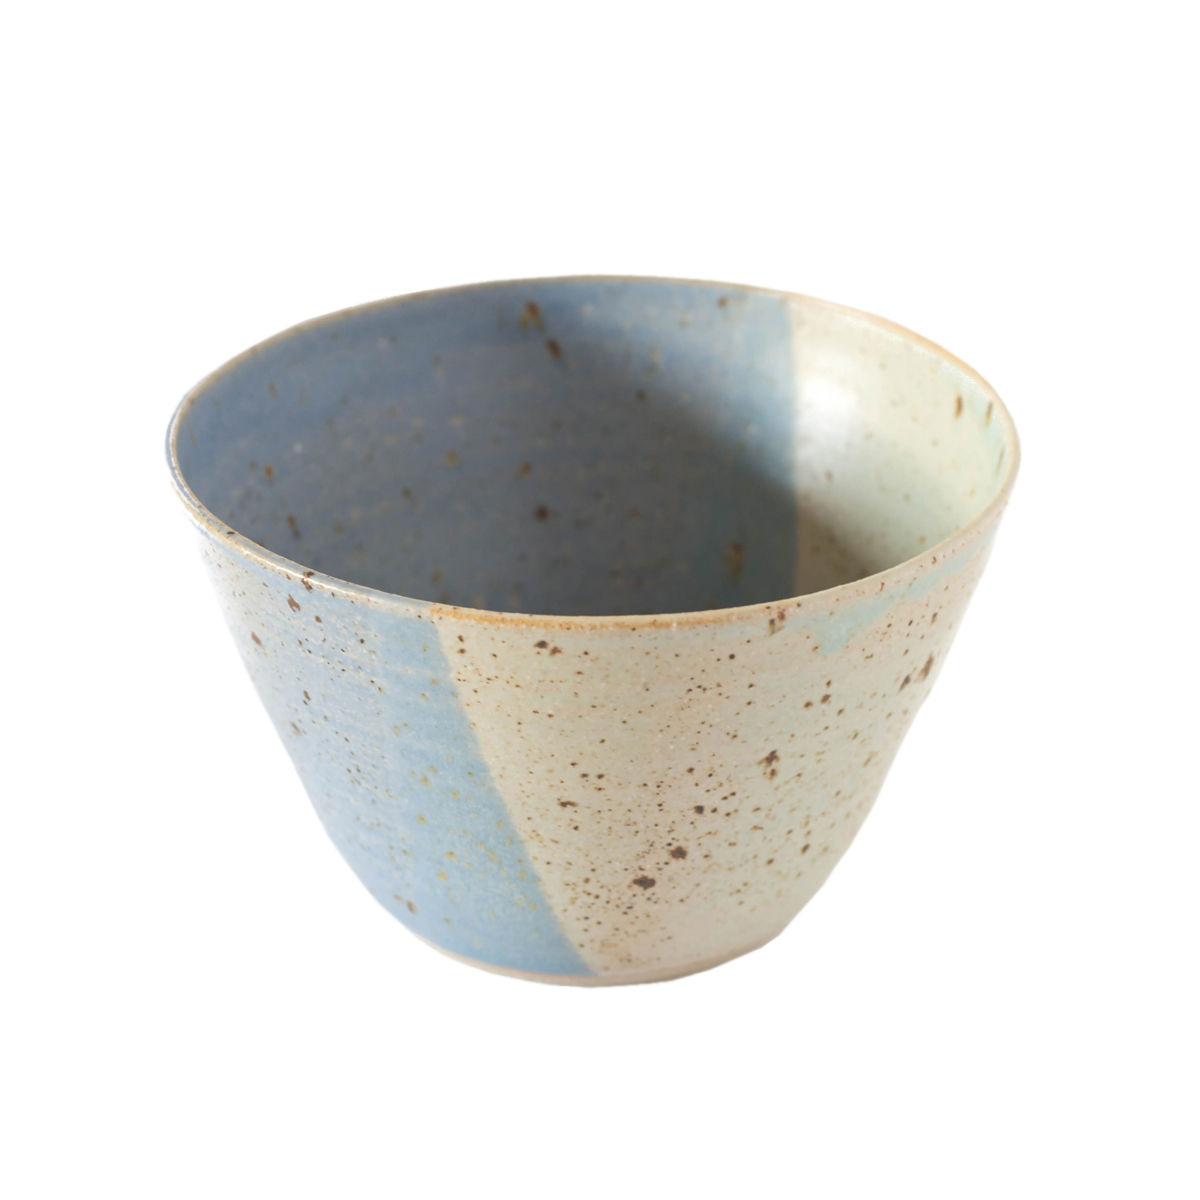 libby-ballard-speckled-ceramic-cereal-bowl